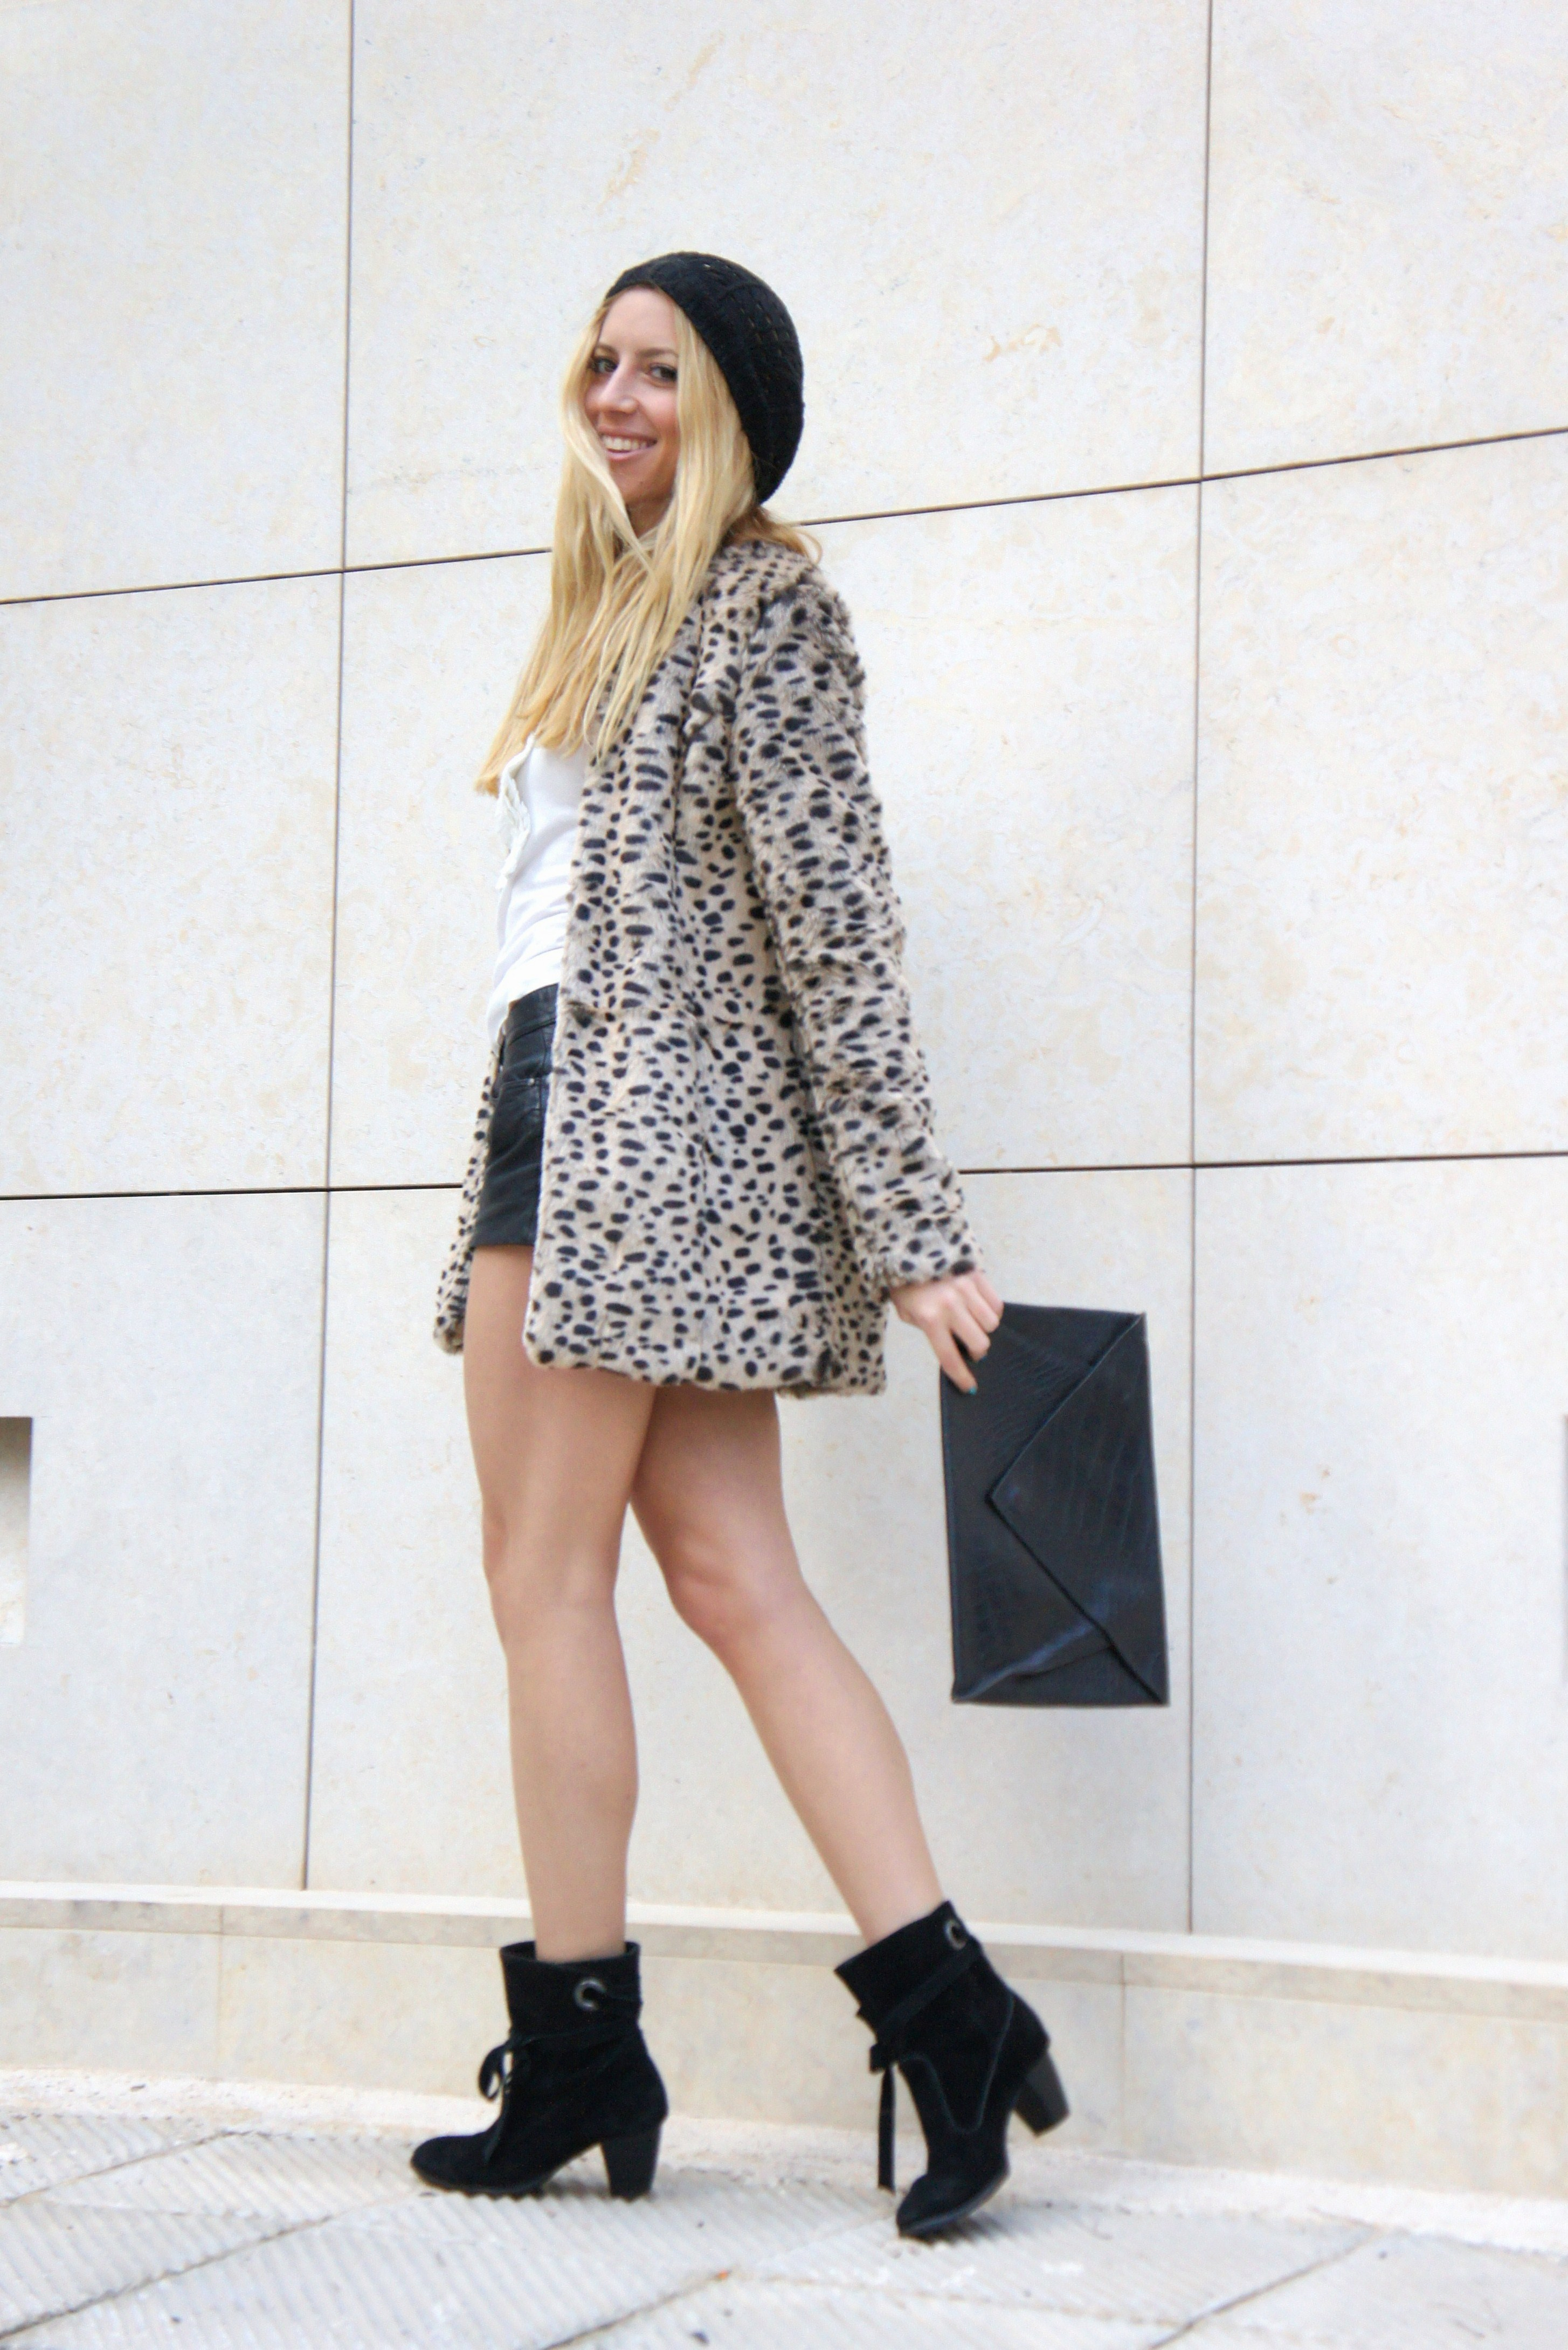 44c7467c987e Wearing leopard coat Pull & Bear, leather shorts and ruffled top Zara,  black beanie and metallic green nail polish H&M, croc clutch vintage,  leather booties ...